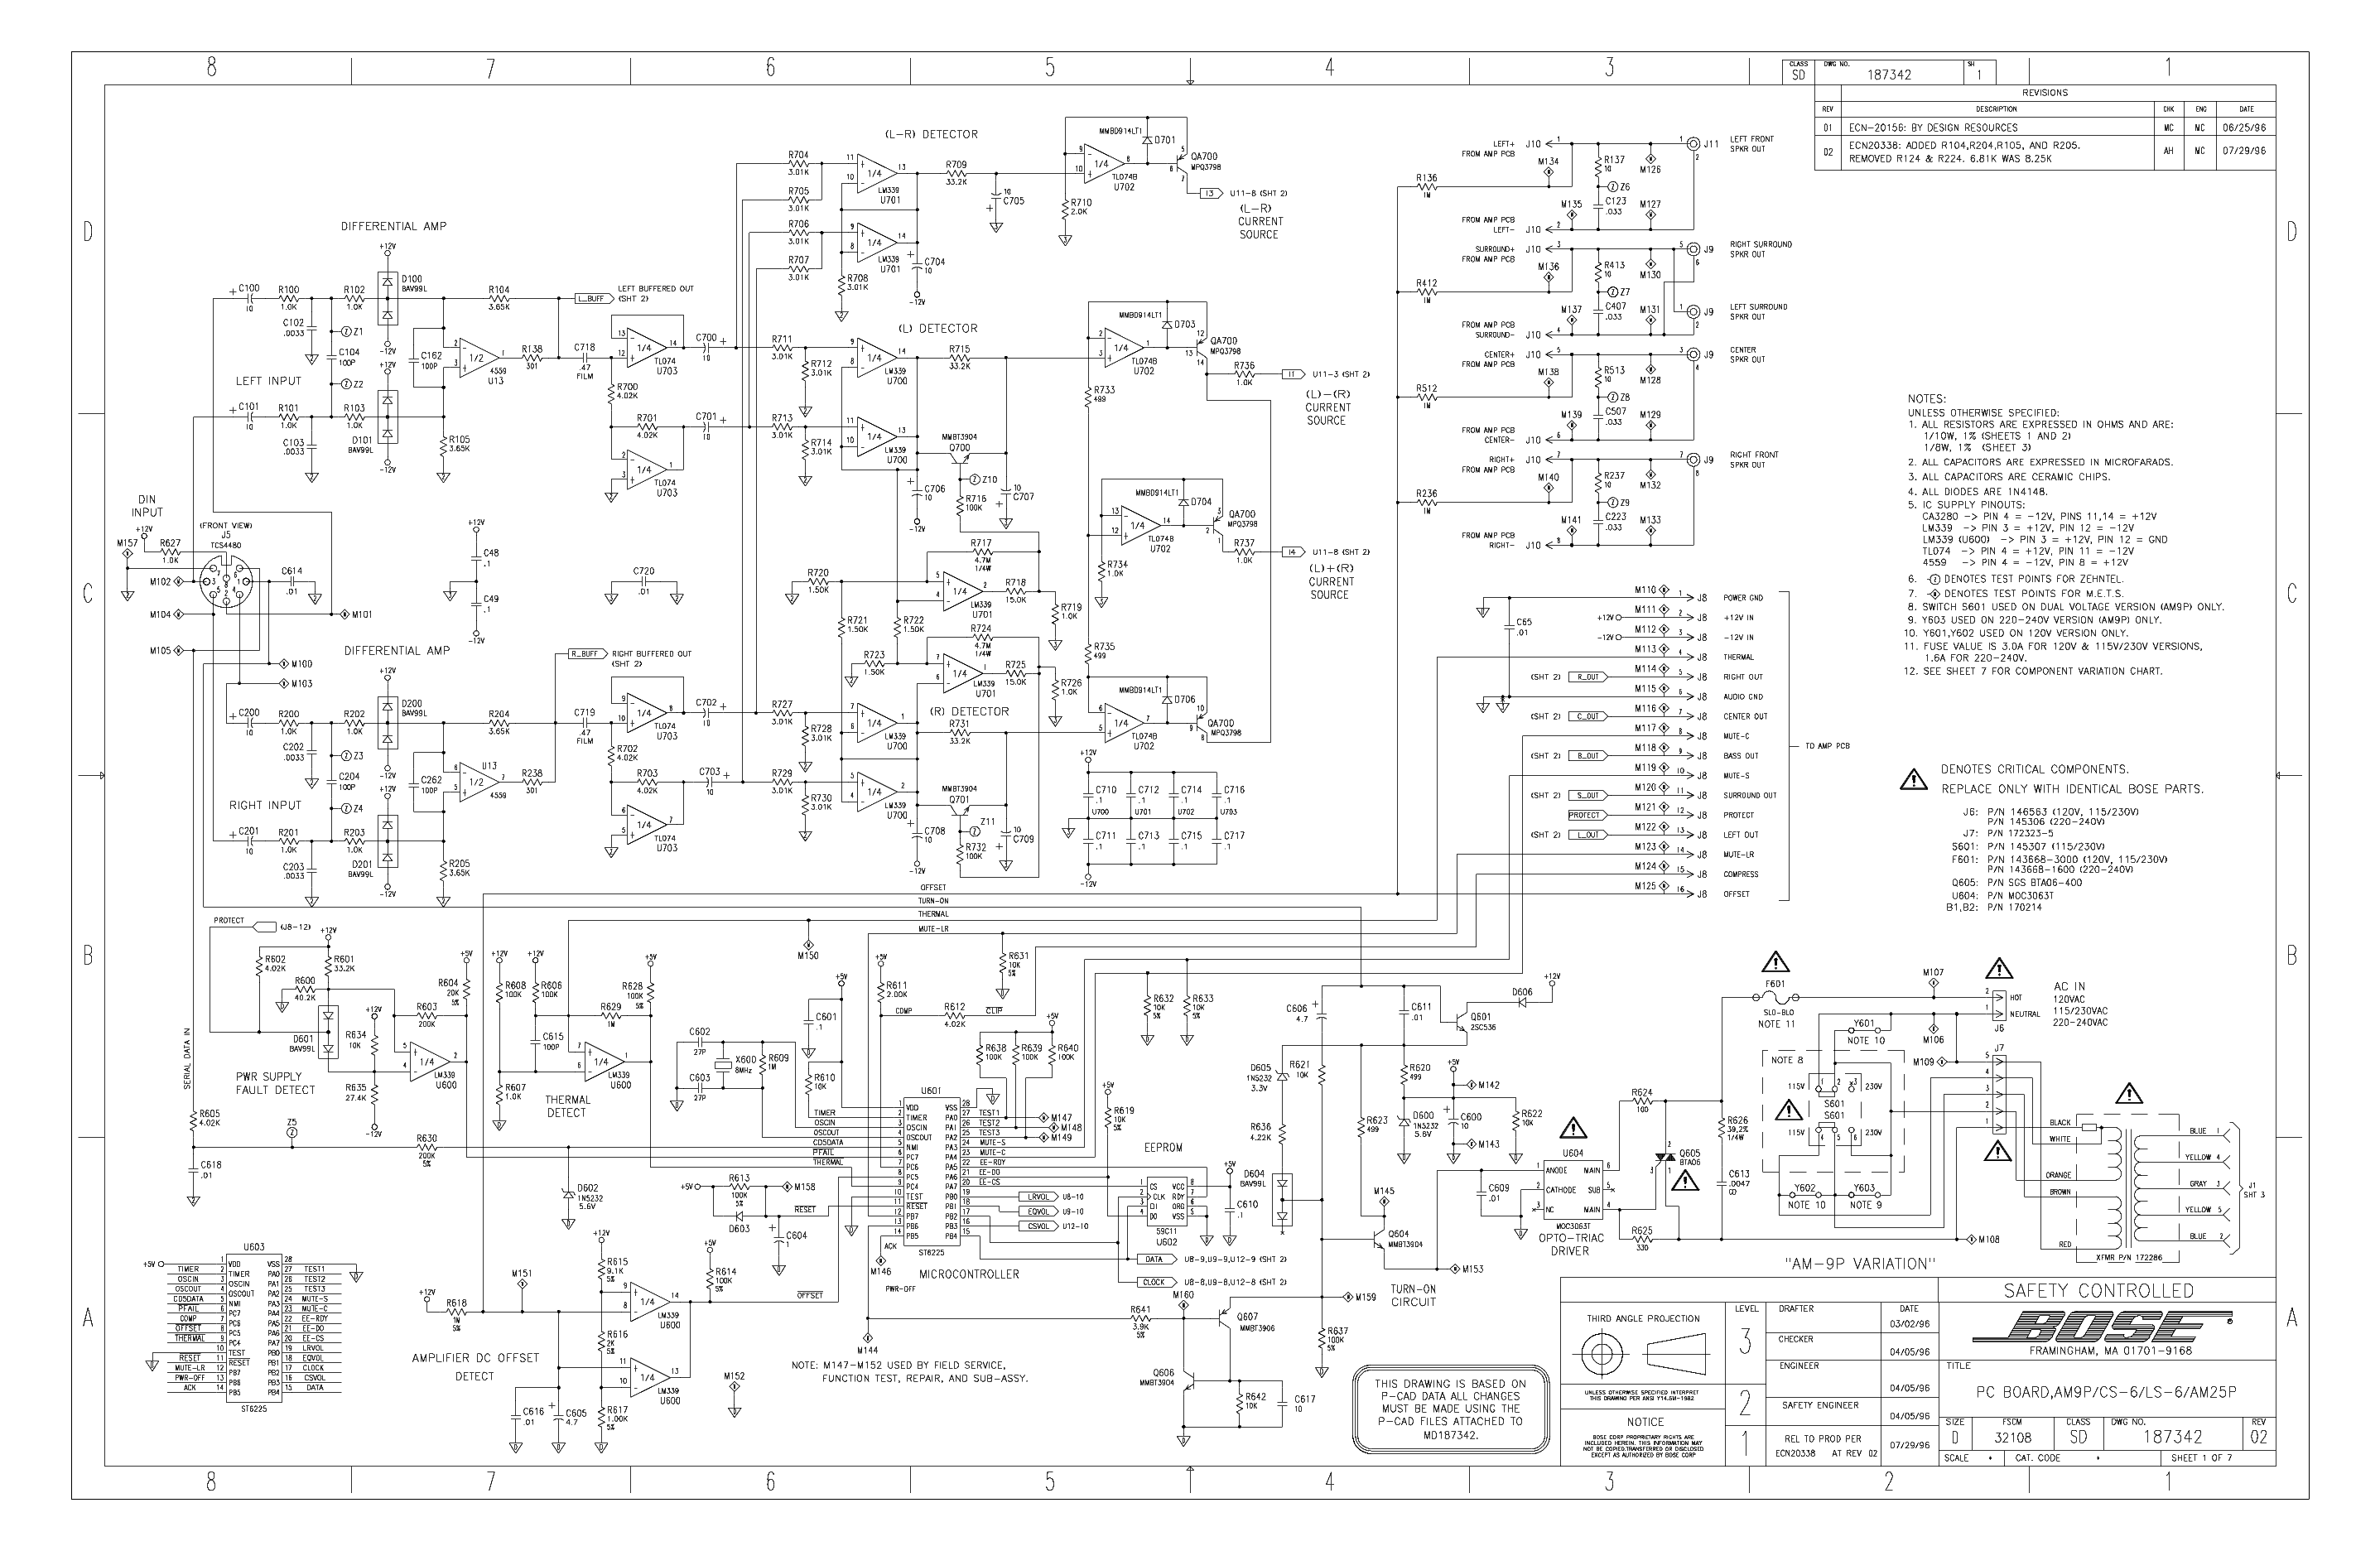 bose 321 subwoofer wiring diagram  diagrams  auto fuse box